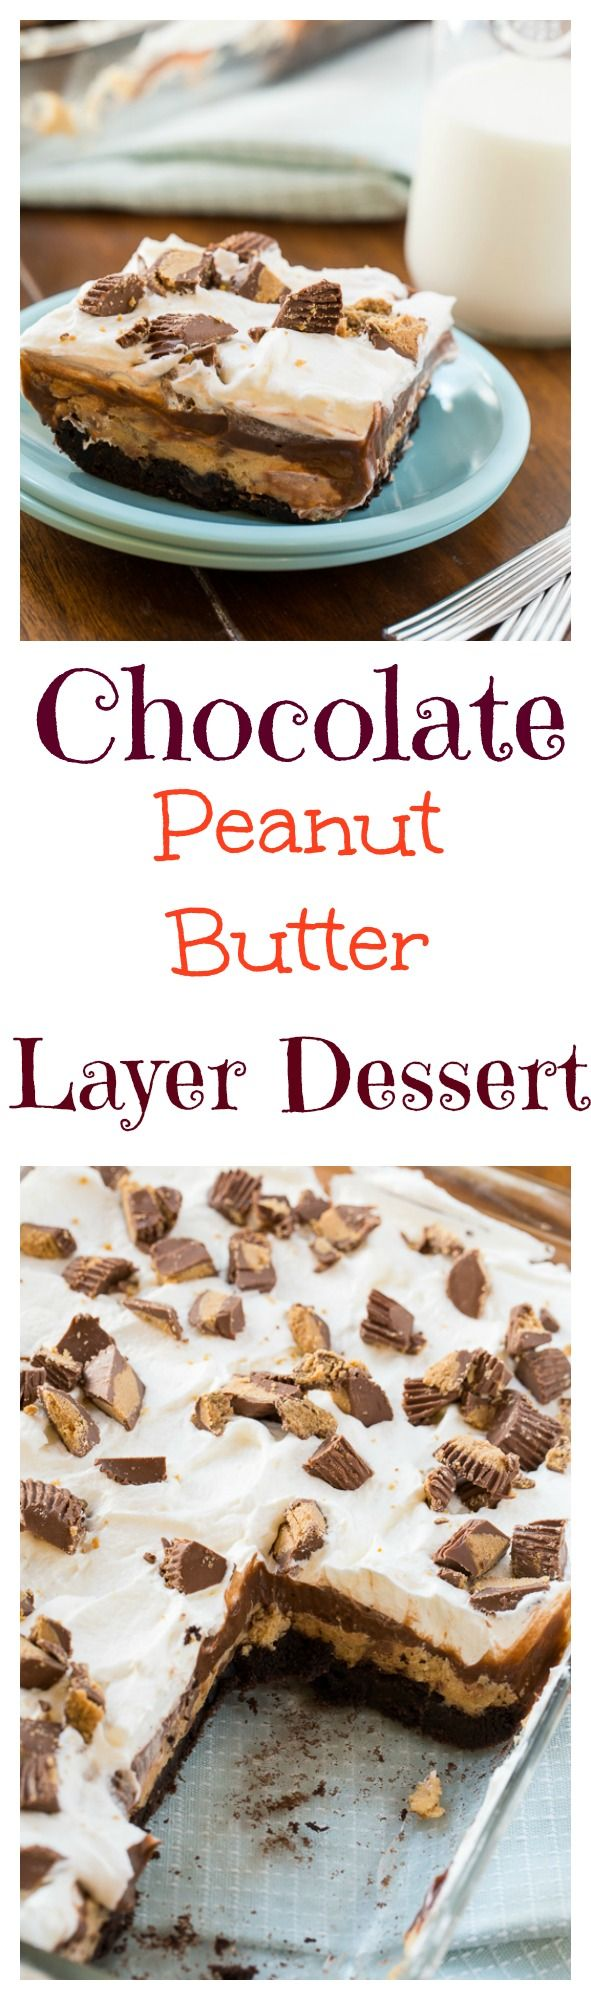 Chocolate Peanut Butter Layer Dessert - layer after layer of goodness!